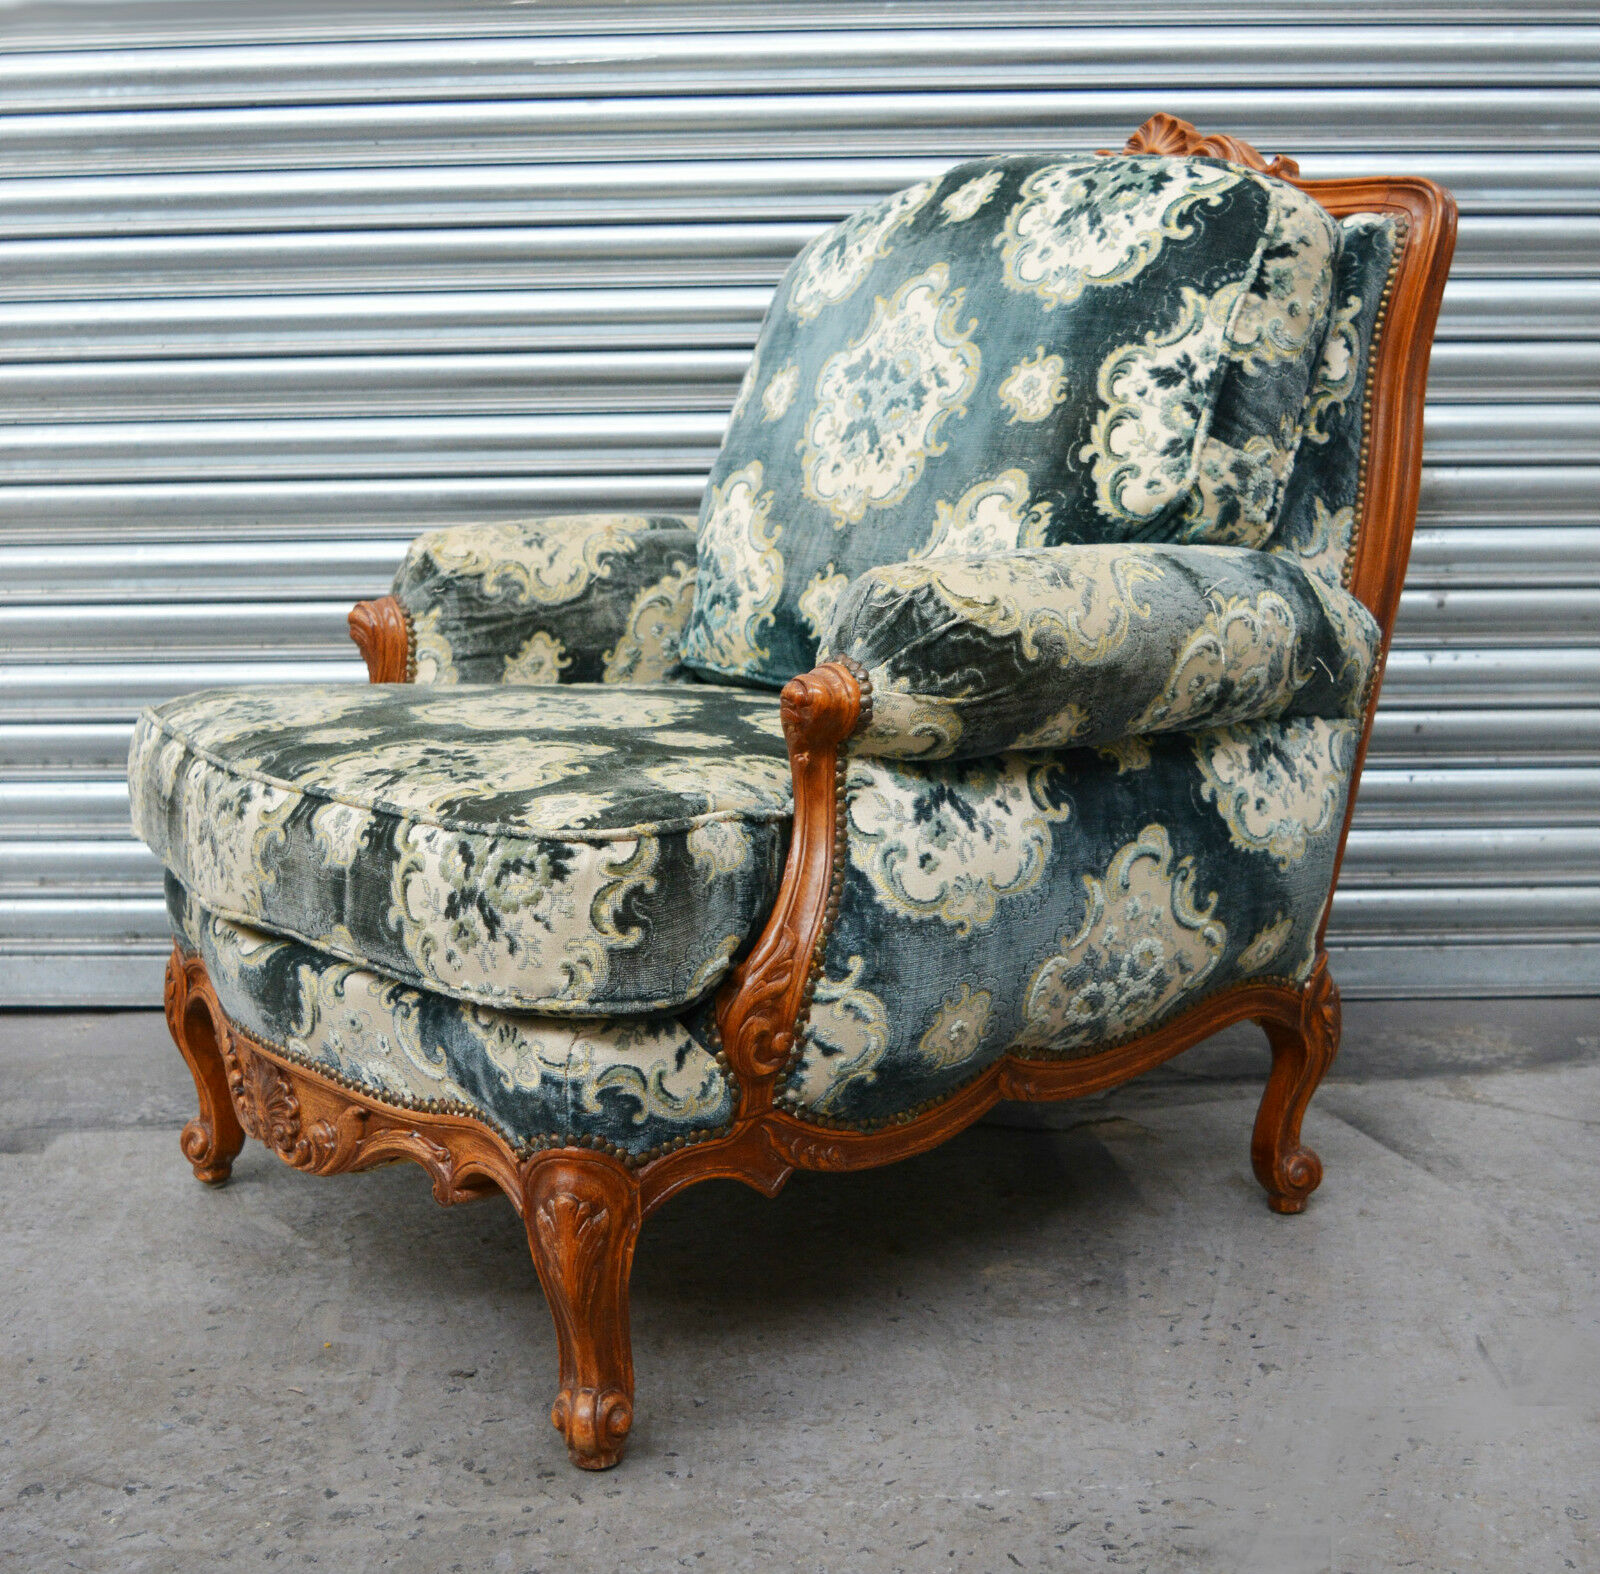 French Louis style Bergere decorative lounge chair / armchair